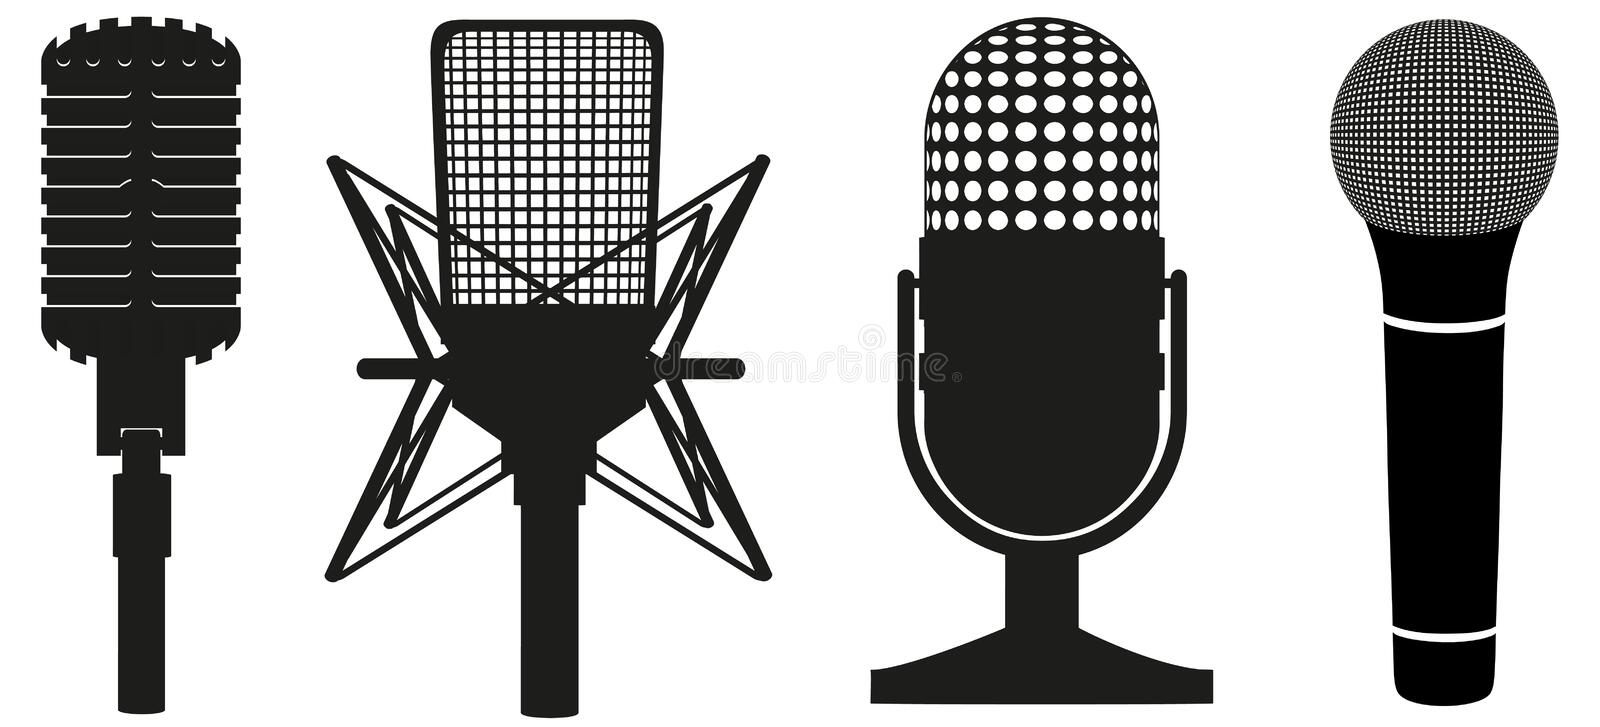 Download Icon Set Of Microphones Black Silhouette Stock Vector - Image: 28639481